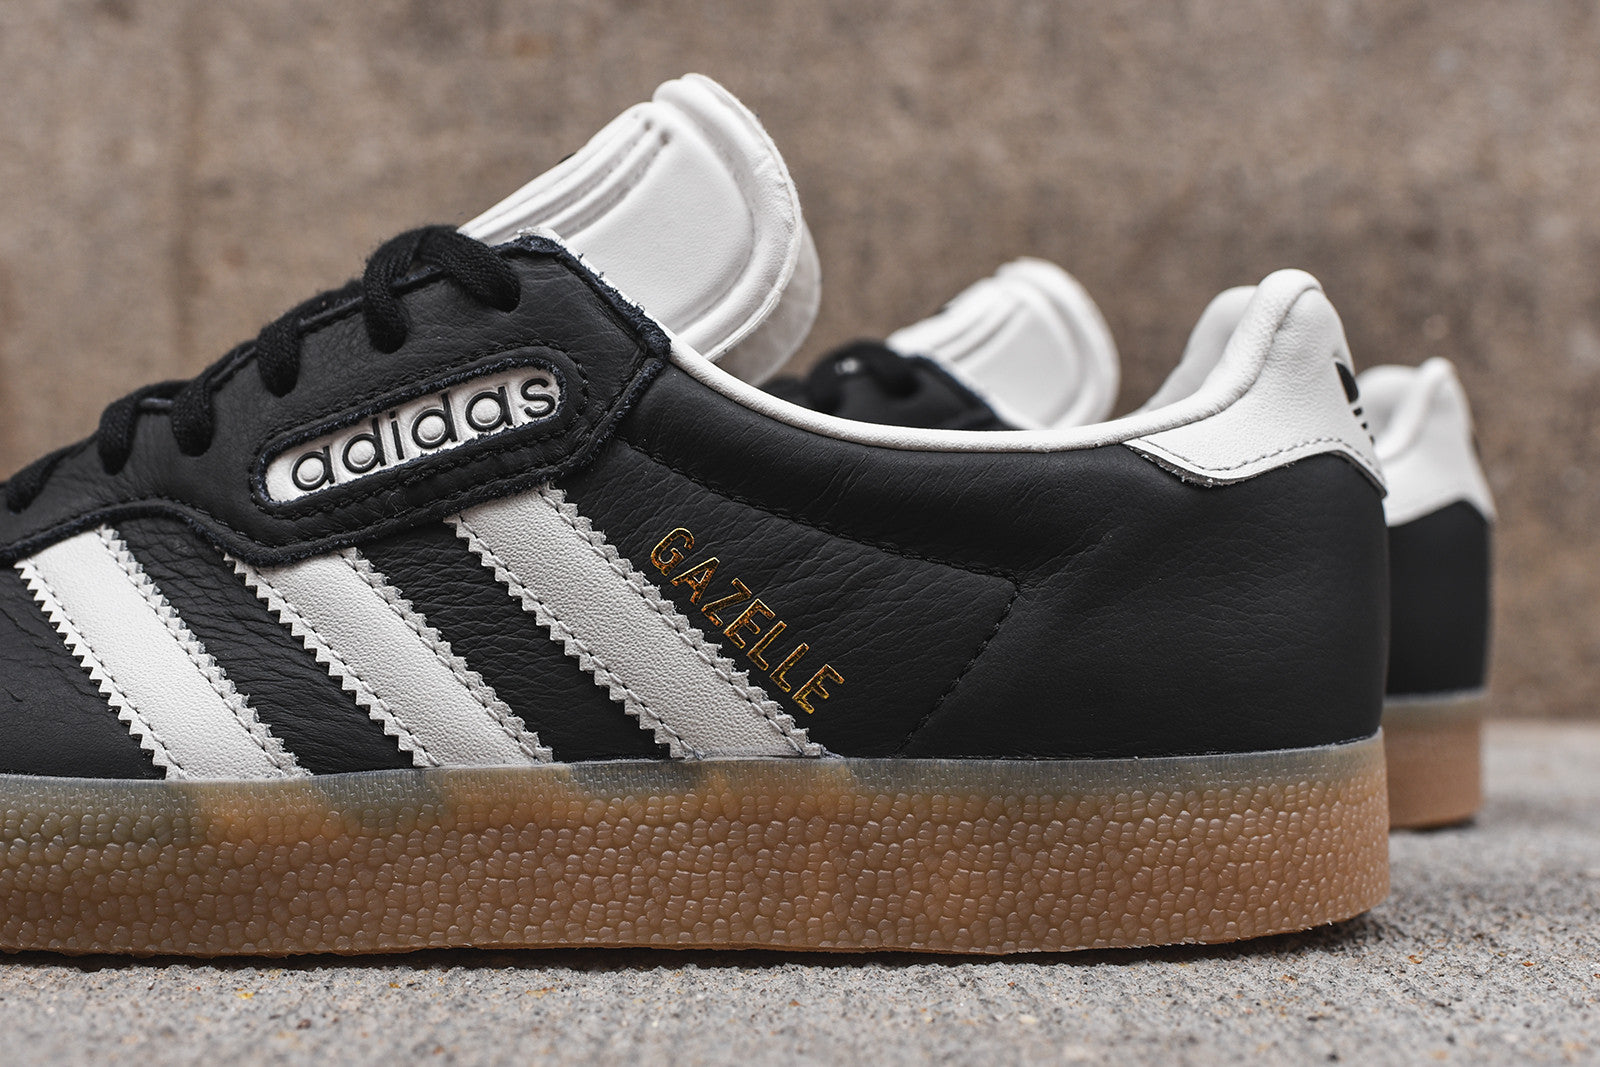 adidas Originals Gazelle - Black / White